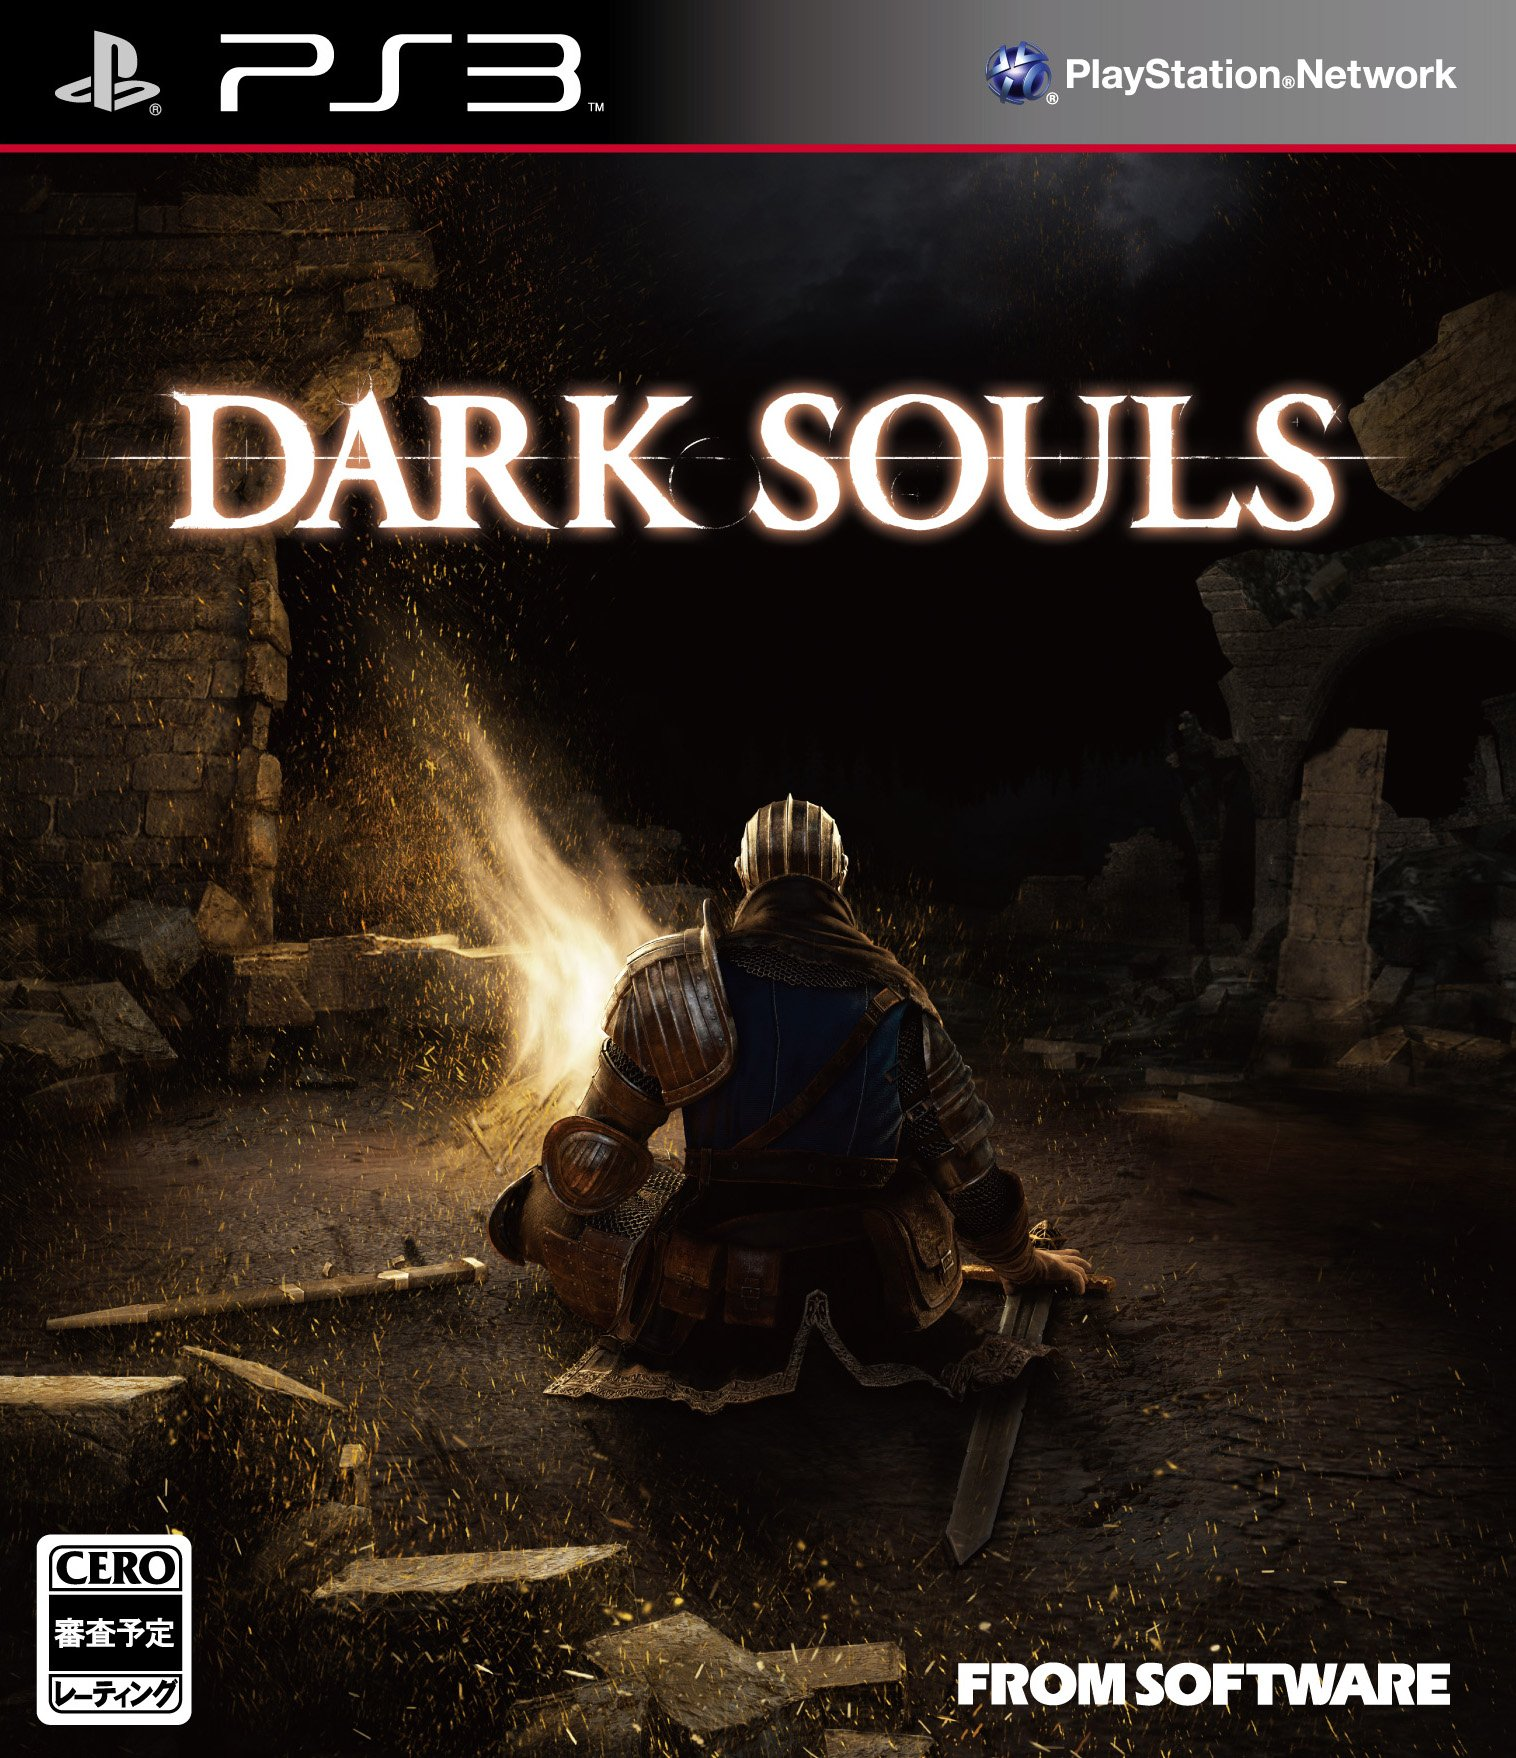 dark souls - cover art